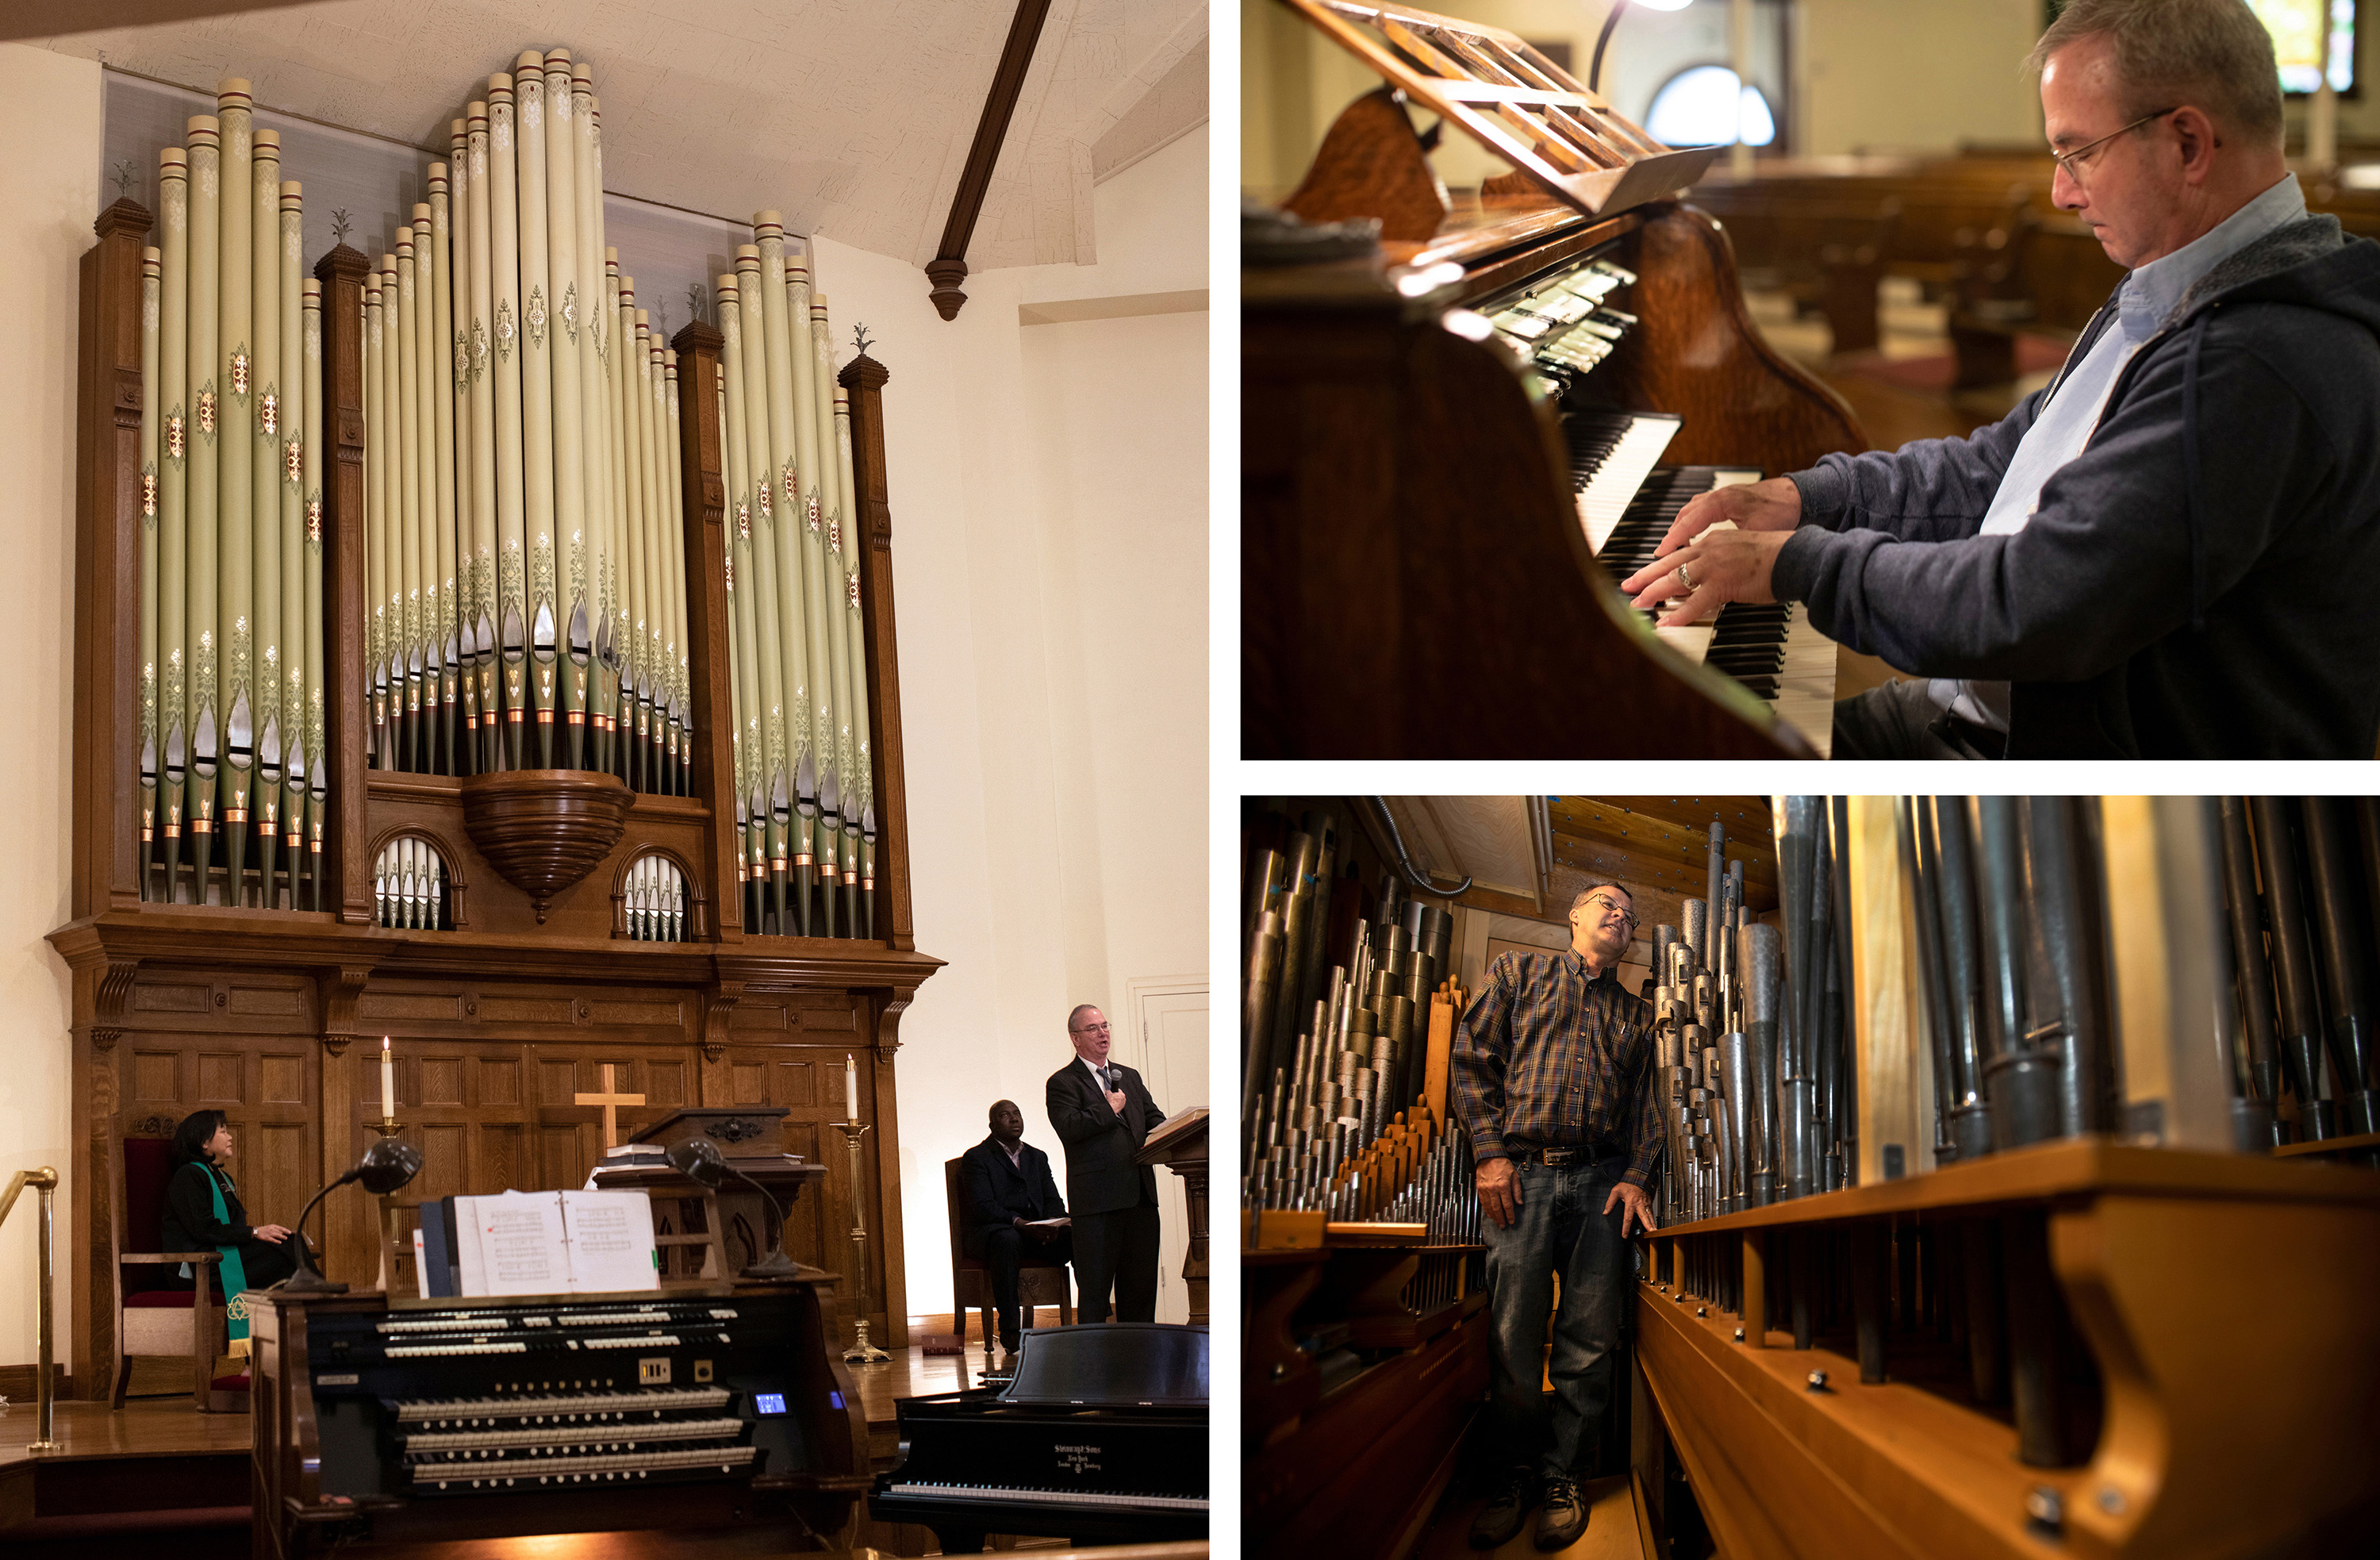 """(Clockwise from left) Music director, Scott Mills, speaks from altar in front of the renovated Bigelow Organ Opus 38, a 43-rank pipe organ. Mills enjoys playing the organ on a Saturday. Historian, Mike Green, gives a """"behind the scene"""" glimpse of the range of pipes not seen sanctuary."""